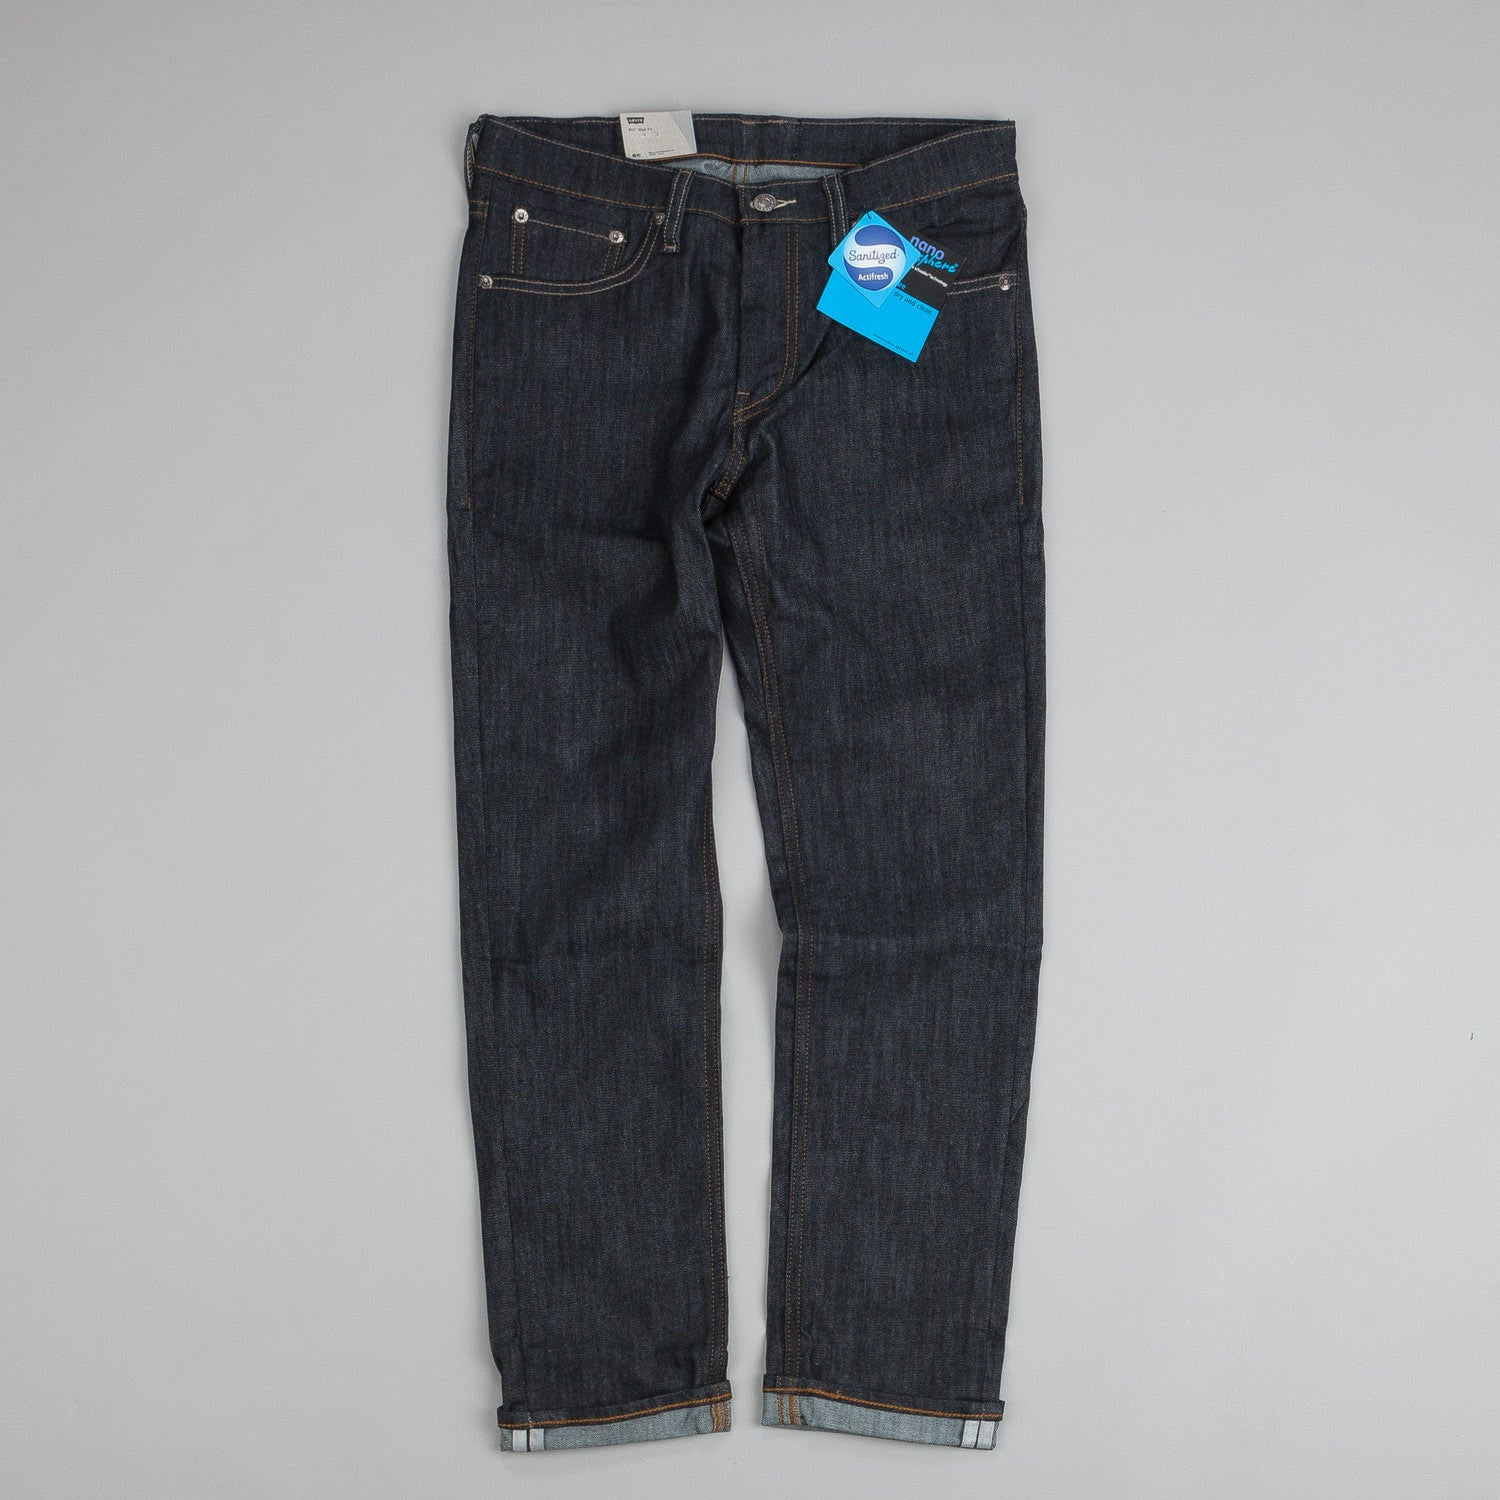 Levi's® Commuter Series 511 Slim Jeans Indigo Denim Rigid